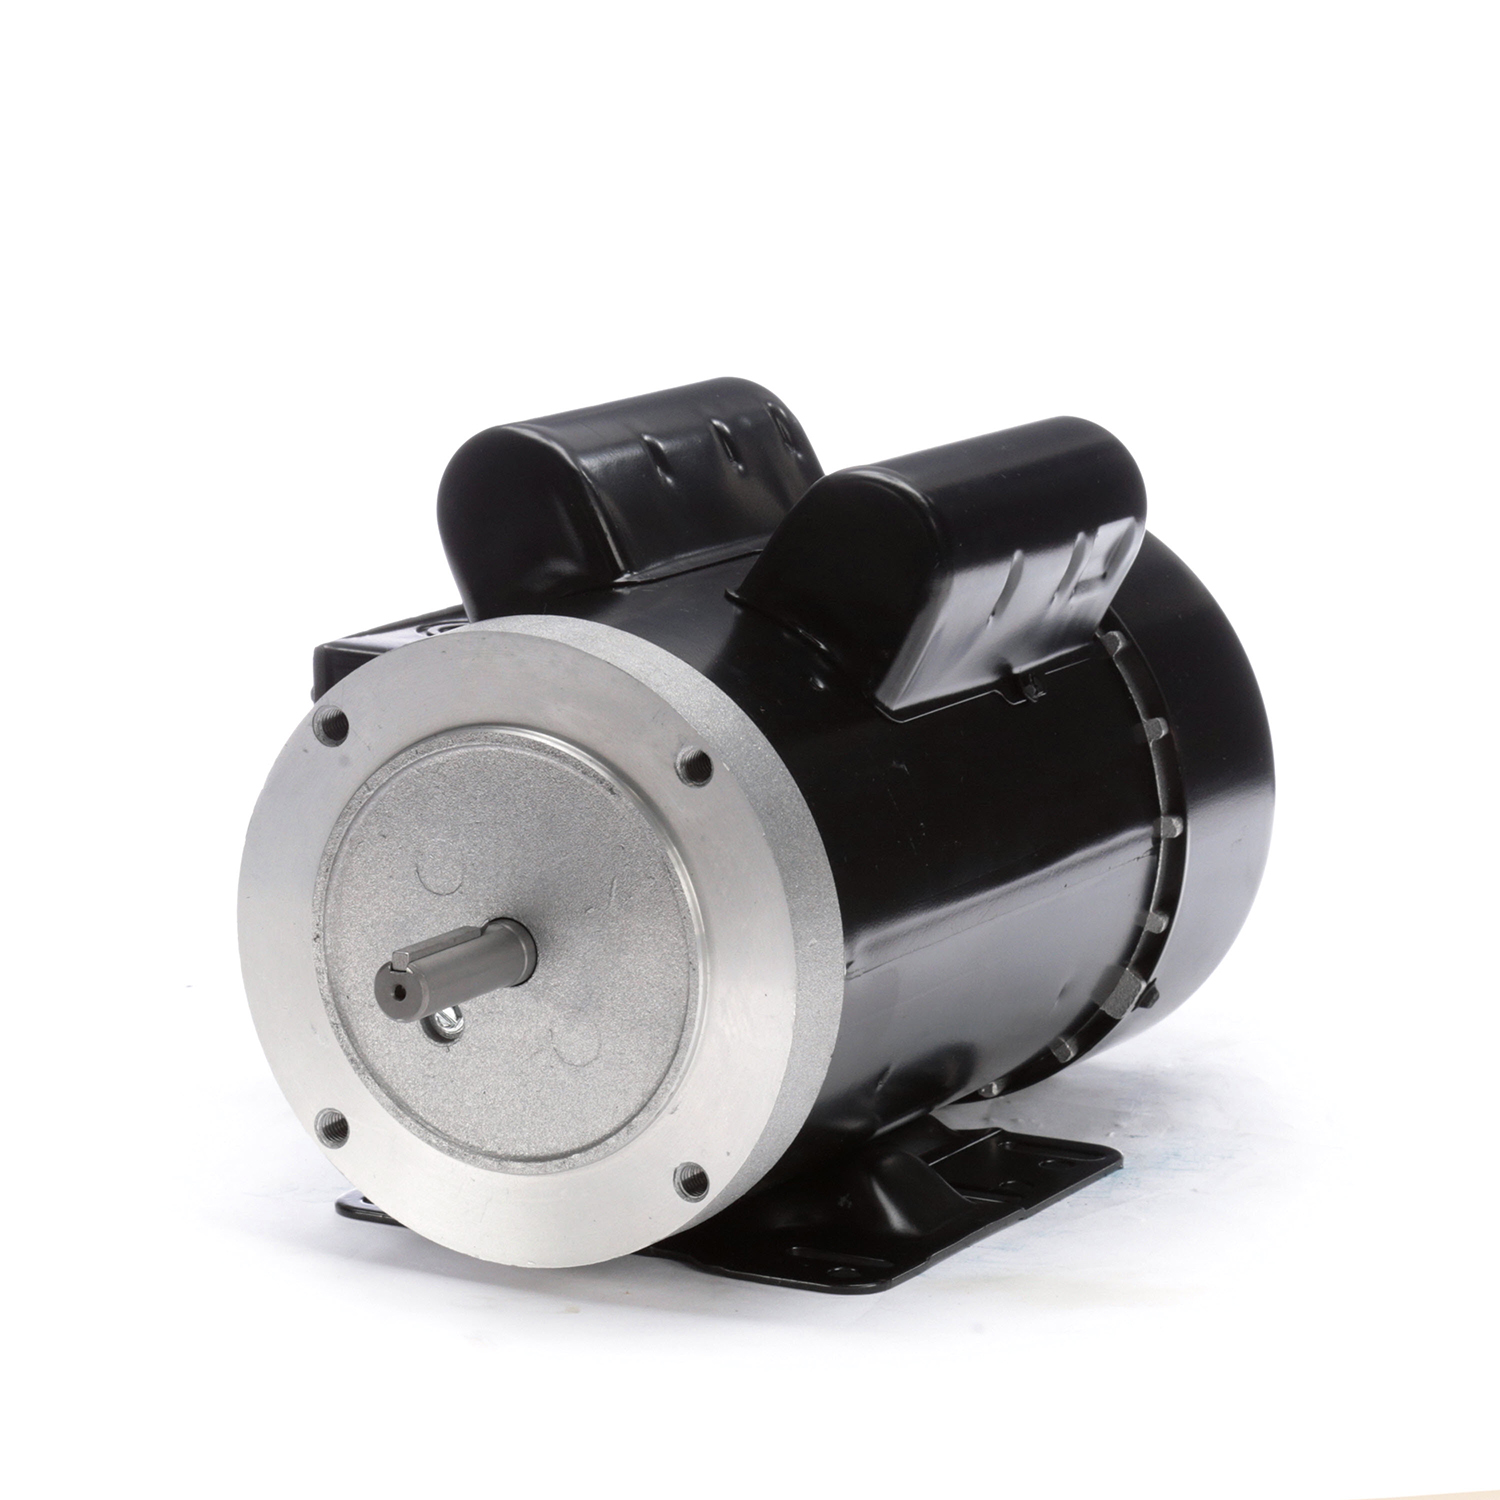 1.5 HP, 208-230/115 V, Totally Enclosed Fan Cooled (TEFC)